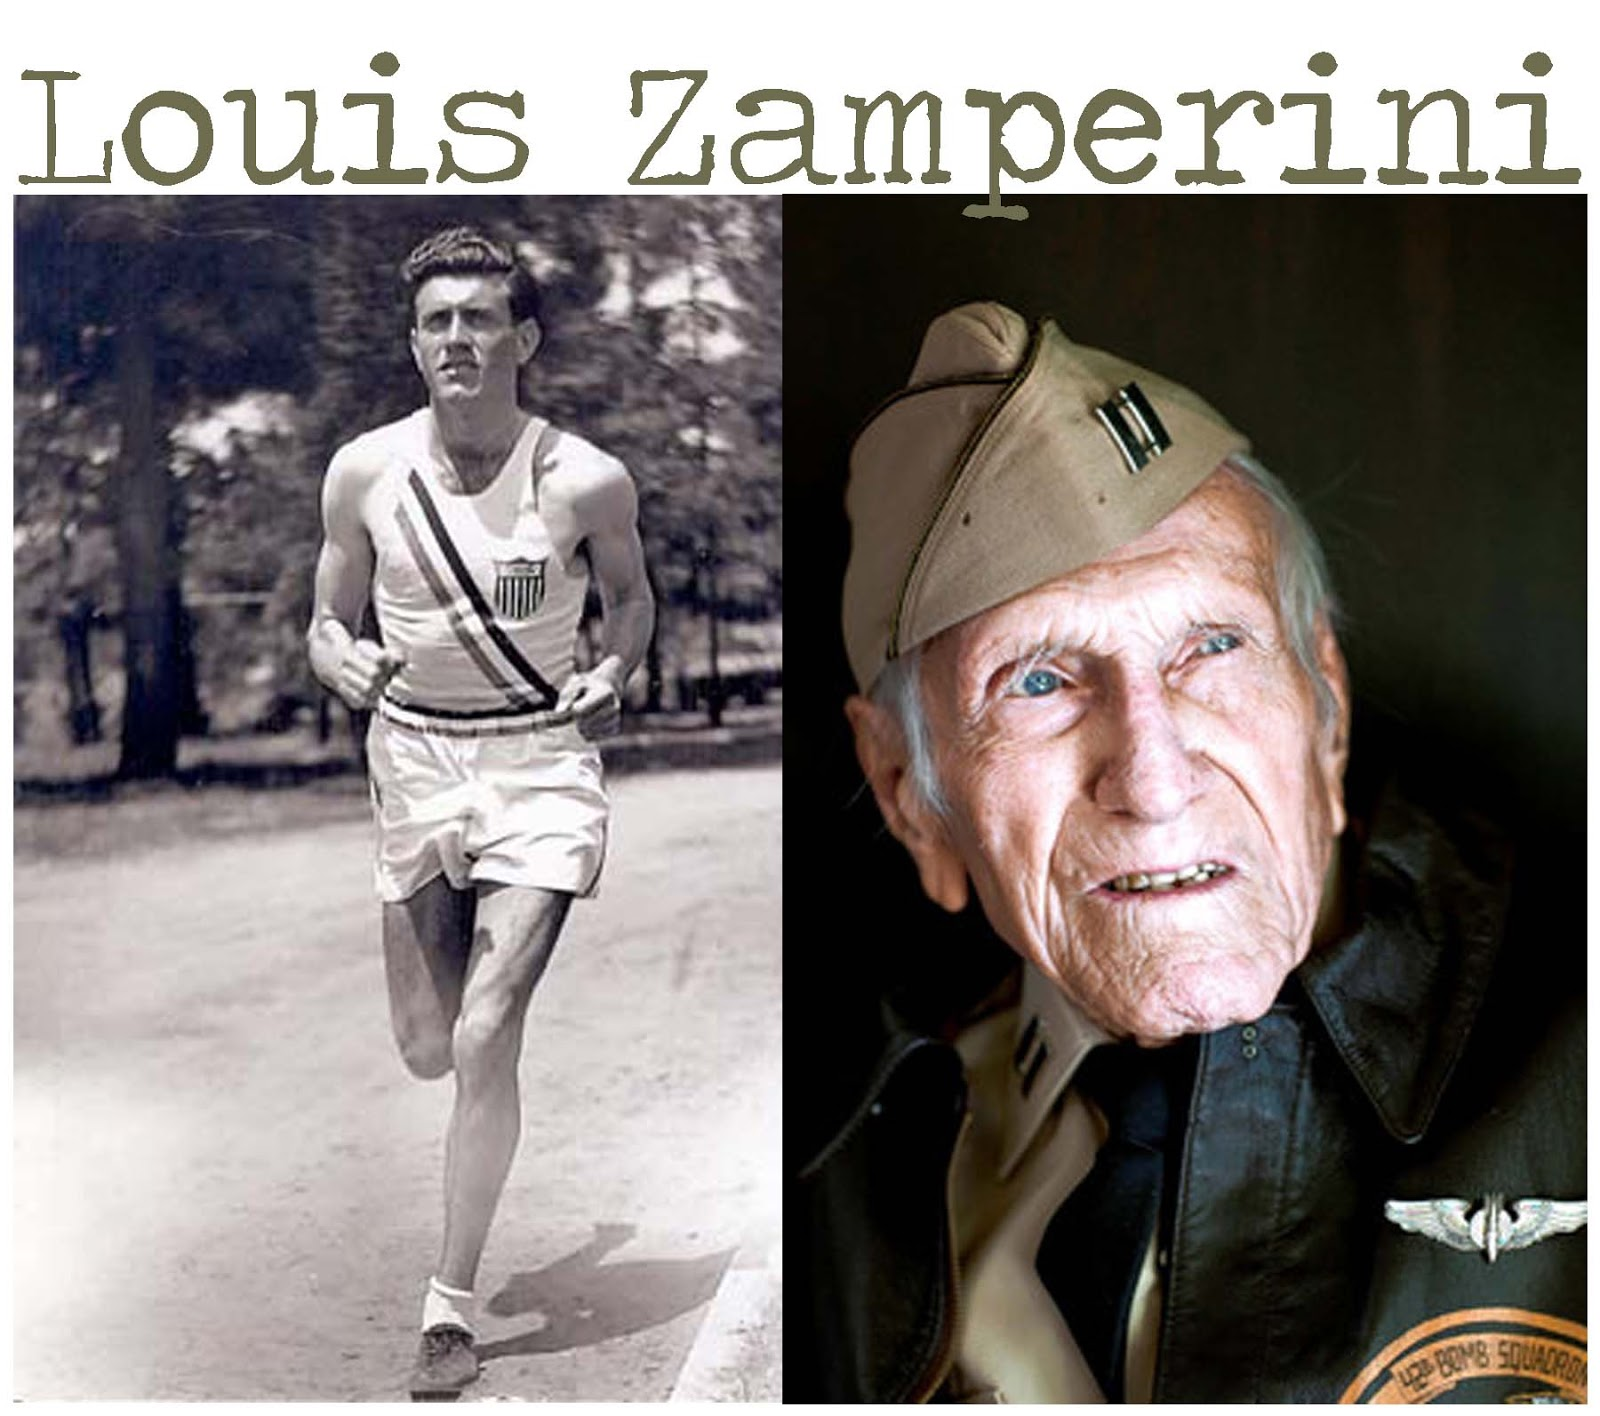 the life of louis zamperini during world war ii in unbroken a book by laura hillenbrand Post-war story of louis zamperini's life that i  or so of laura hillenbrand's 2010 book unbroken:  as louis zamperini set during world war ii,.